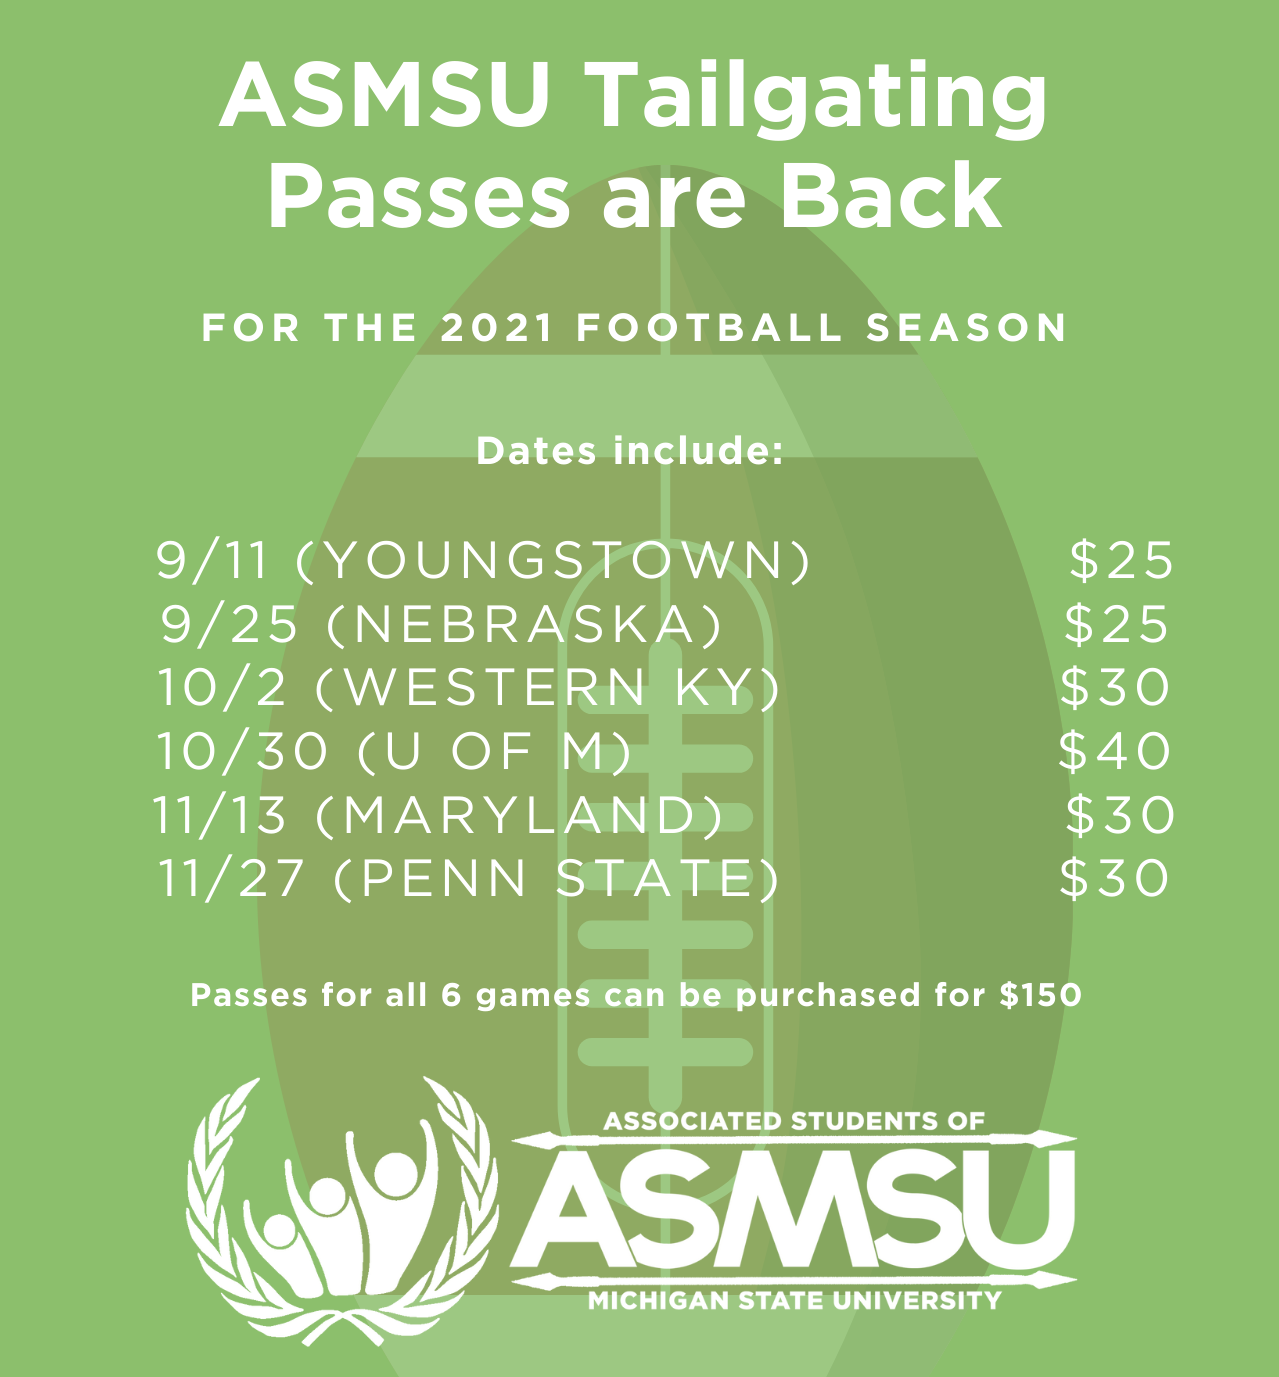 Tailgate Information